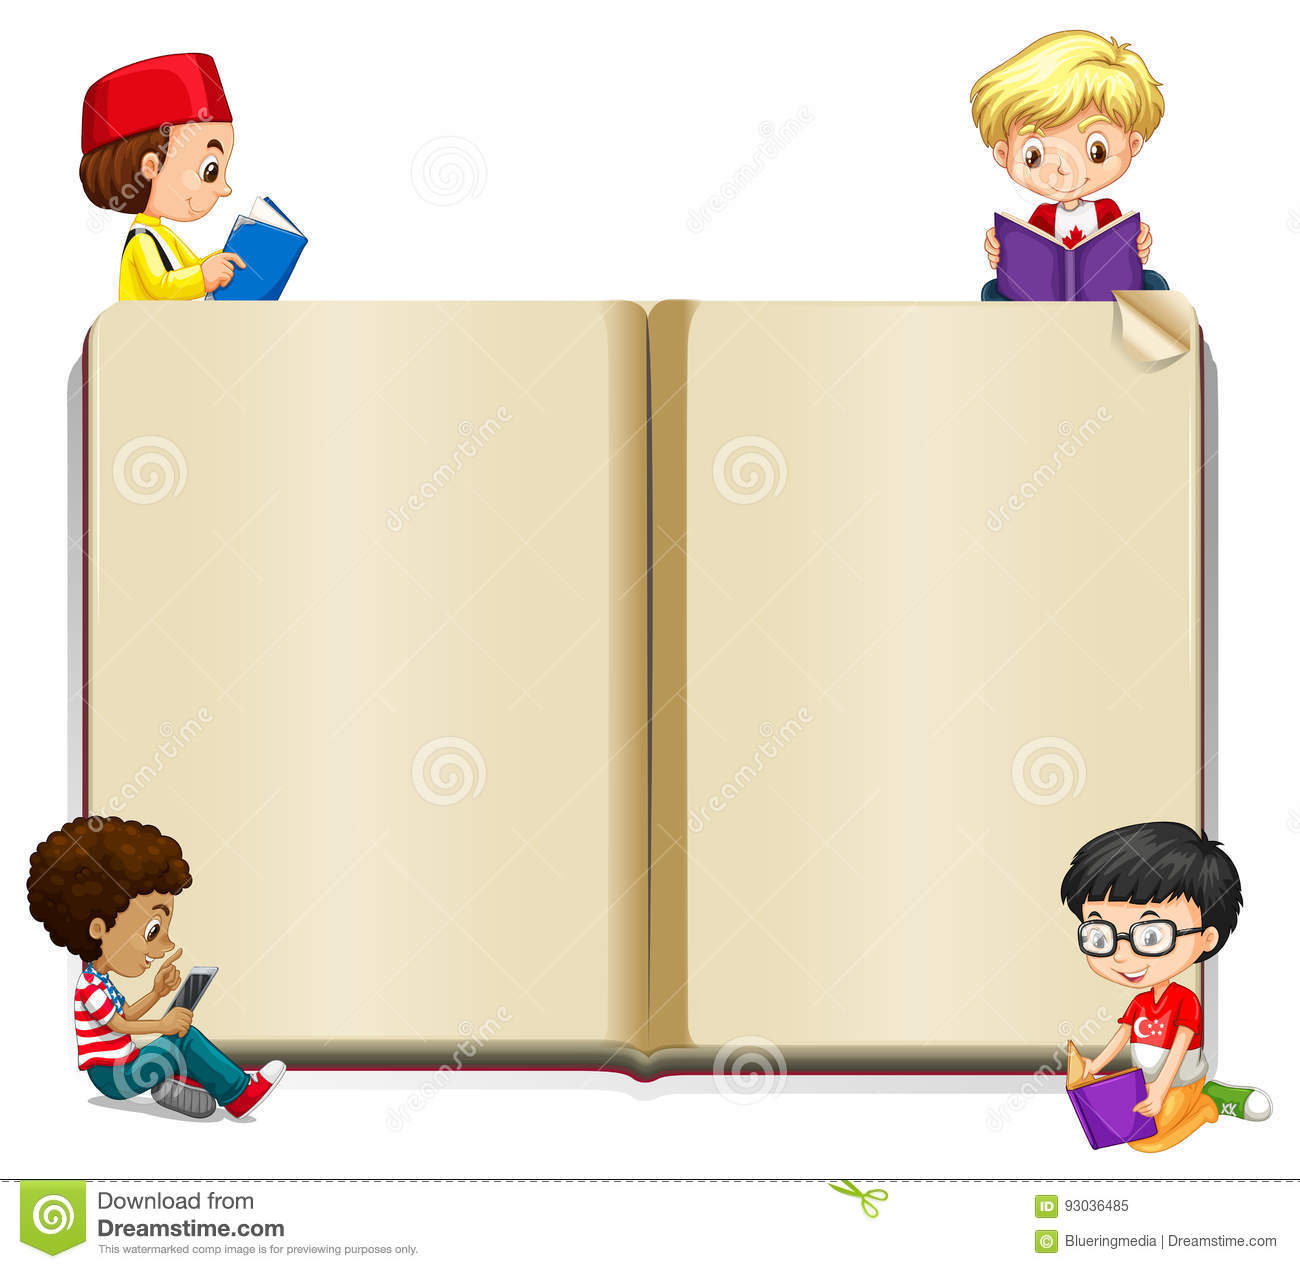 Book Template With Kids Reading Stock Vector Illustration of read